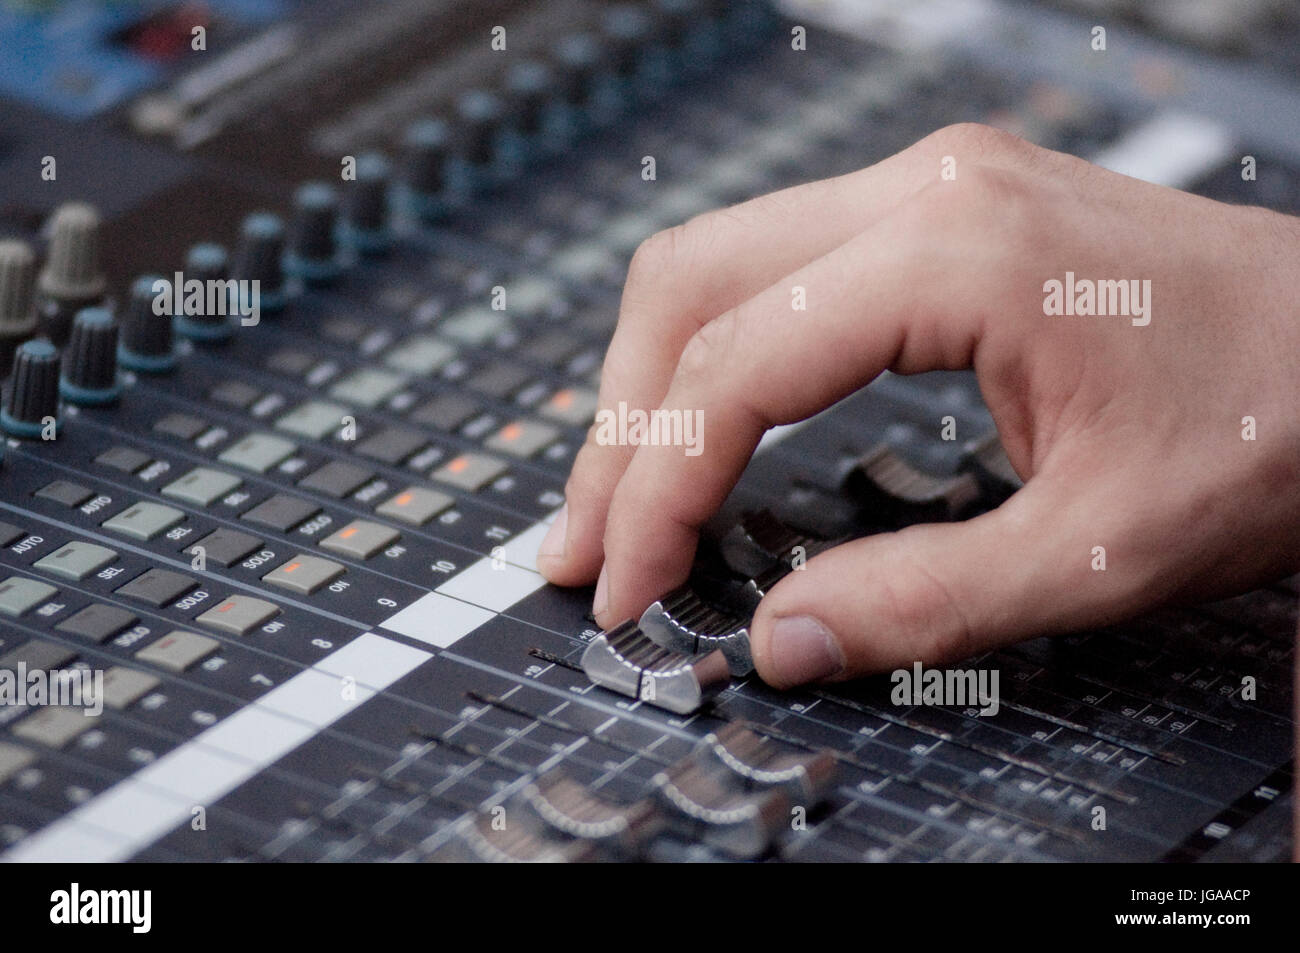 Sound Engineer Operating Professional Sound Mixer at Live Concert, Hand. - Stock Image